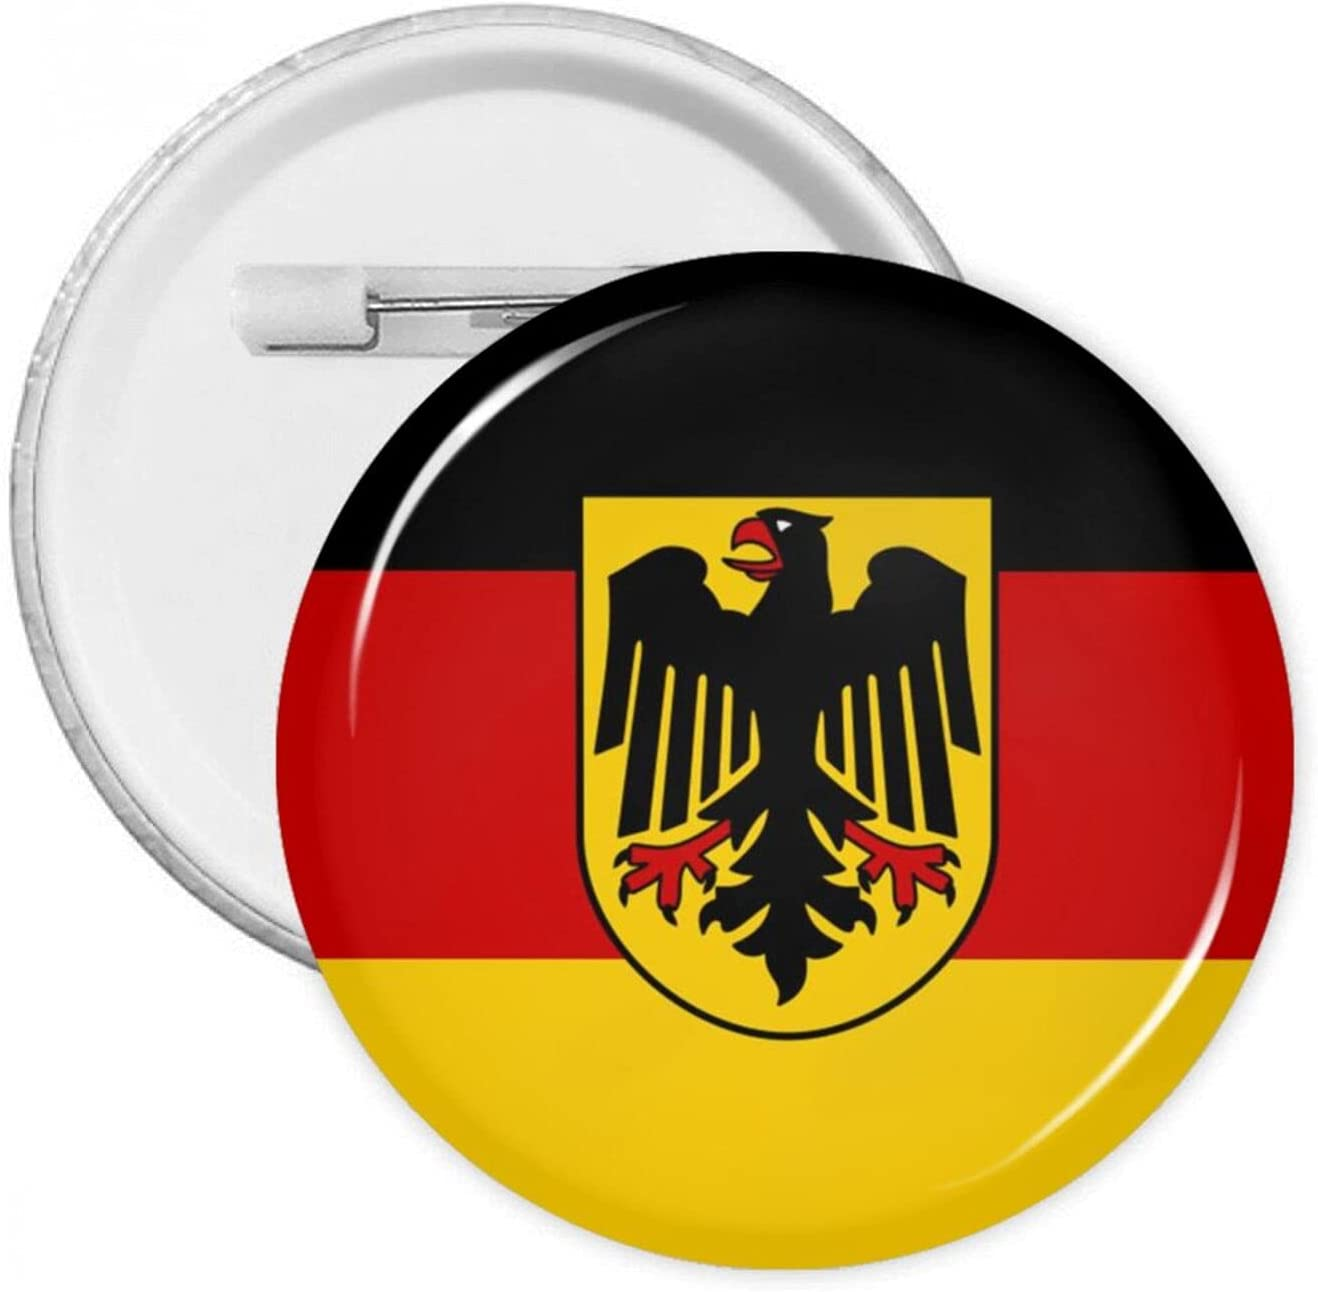 Deutschland Flag 1.2/1.8/2.3 Inch Round Pins Brooches Button Medal Tinplate Pins Emblem Adult Children Pin Badges Decor for Backpacks Costume